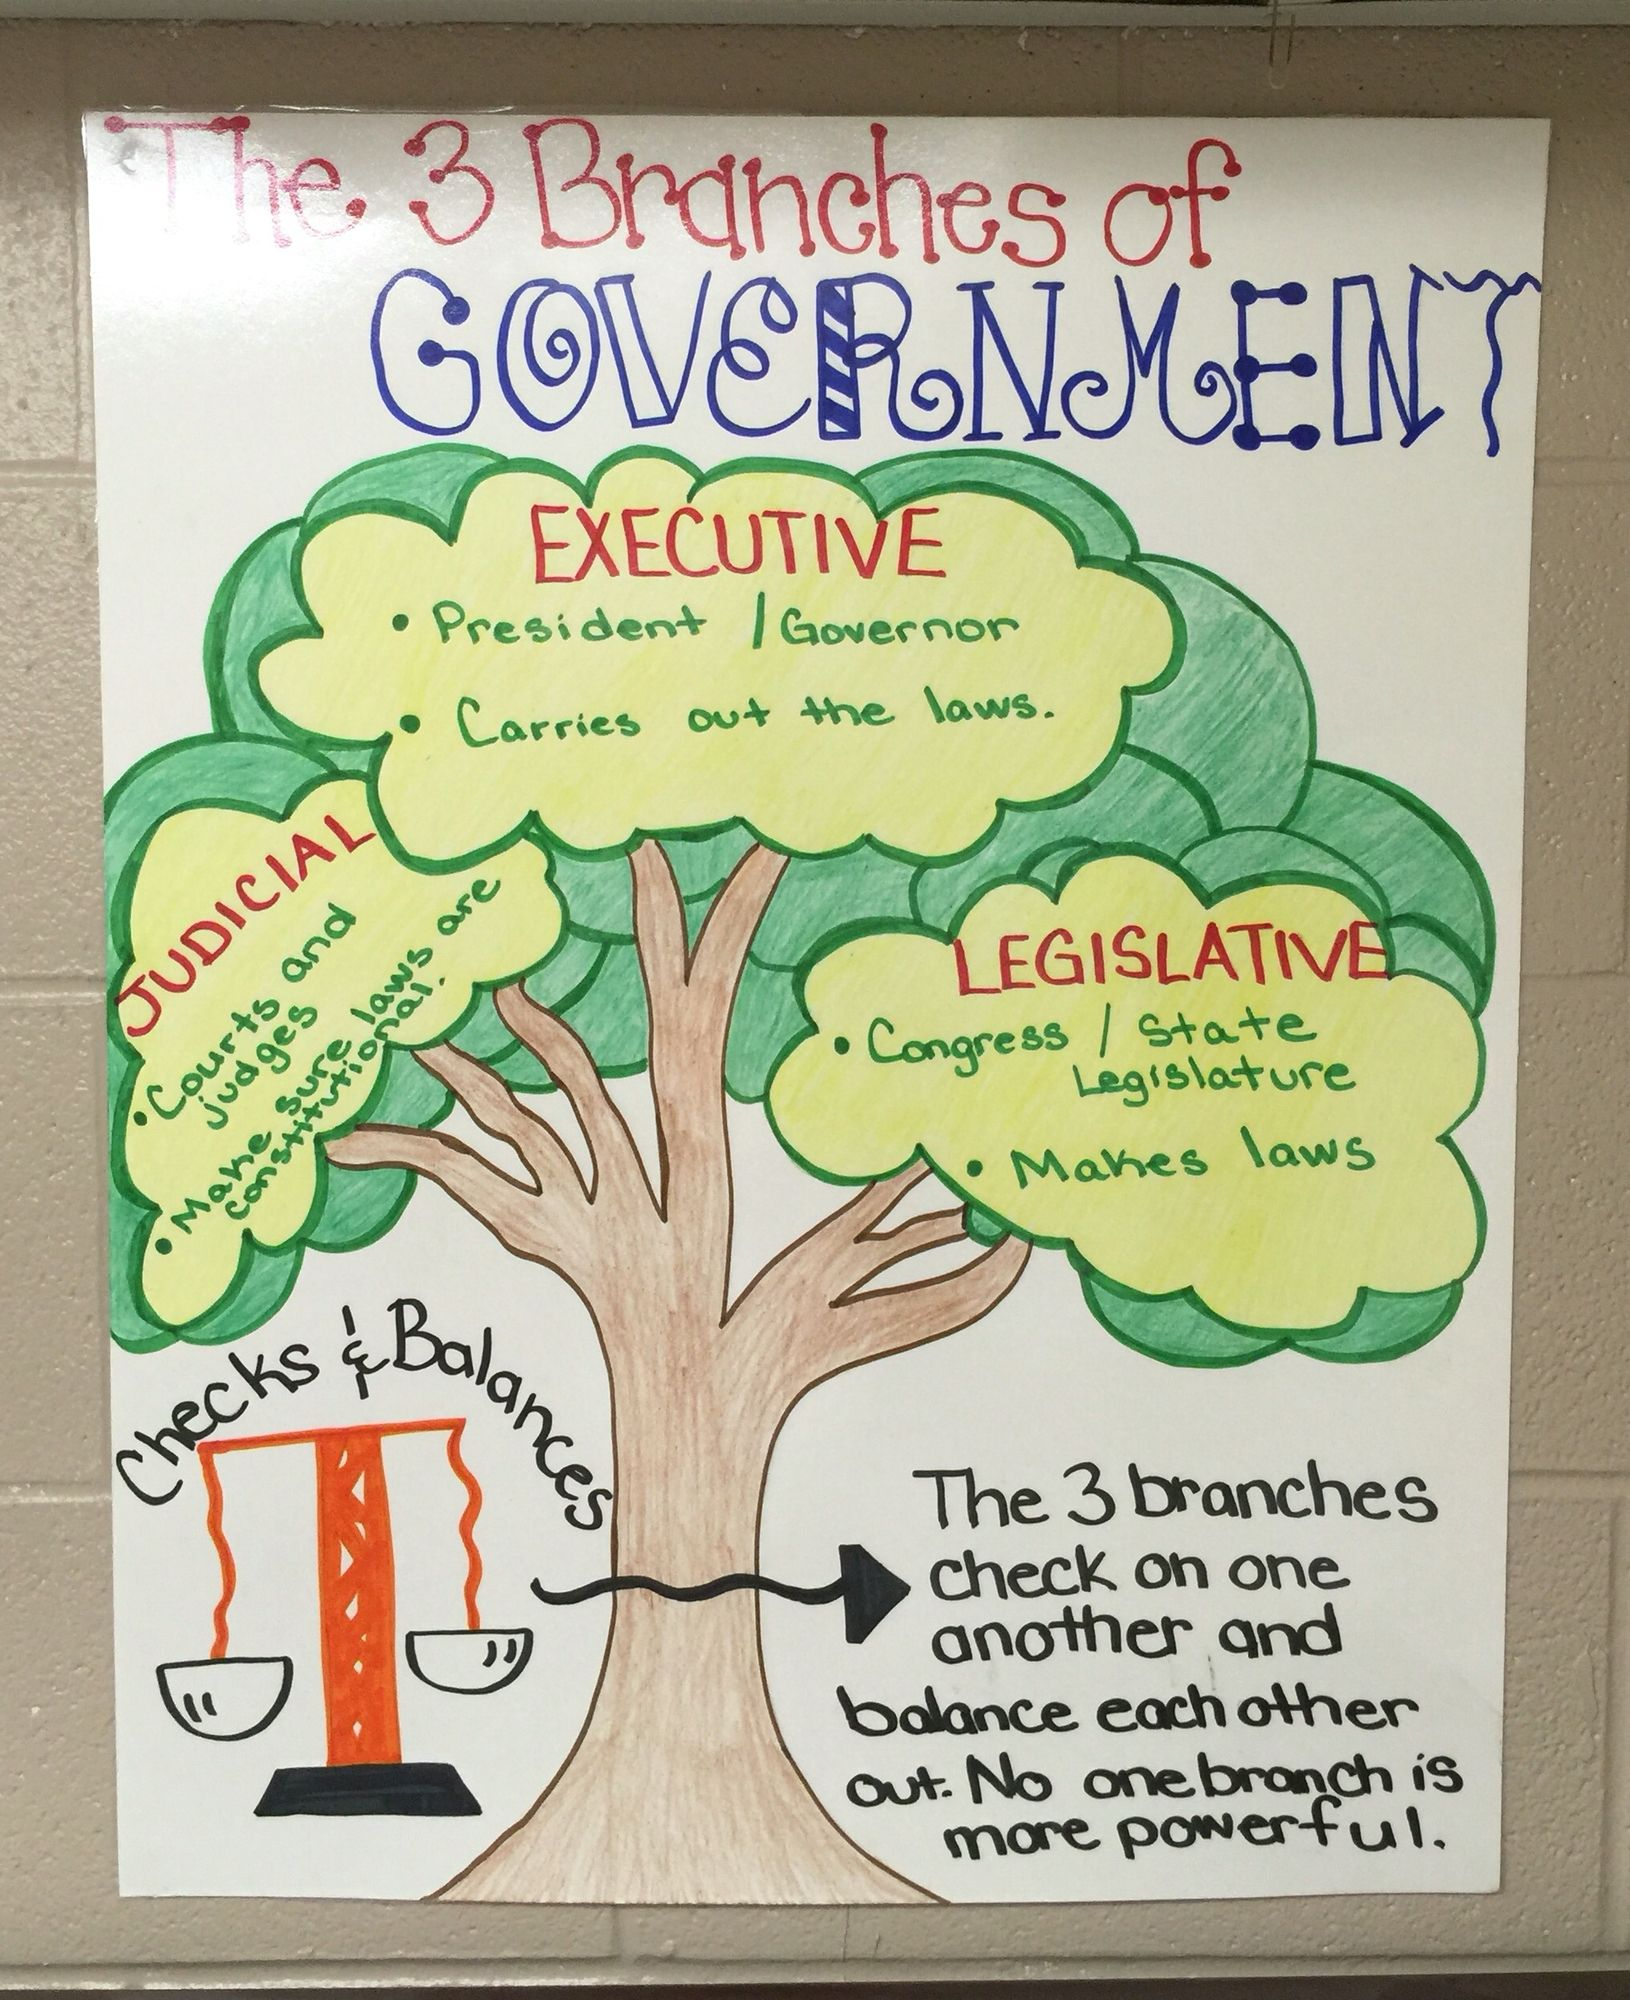 us government checks and balances diagram toyota celica speaker wiring 3 branches of anchor chart  pinteres